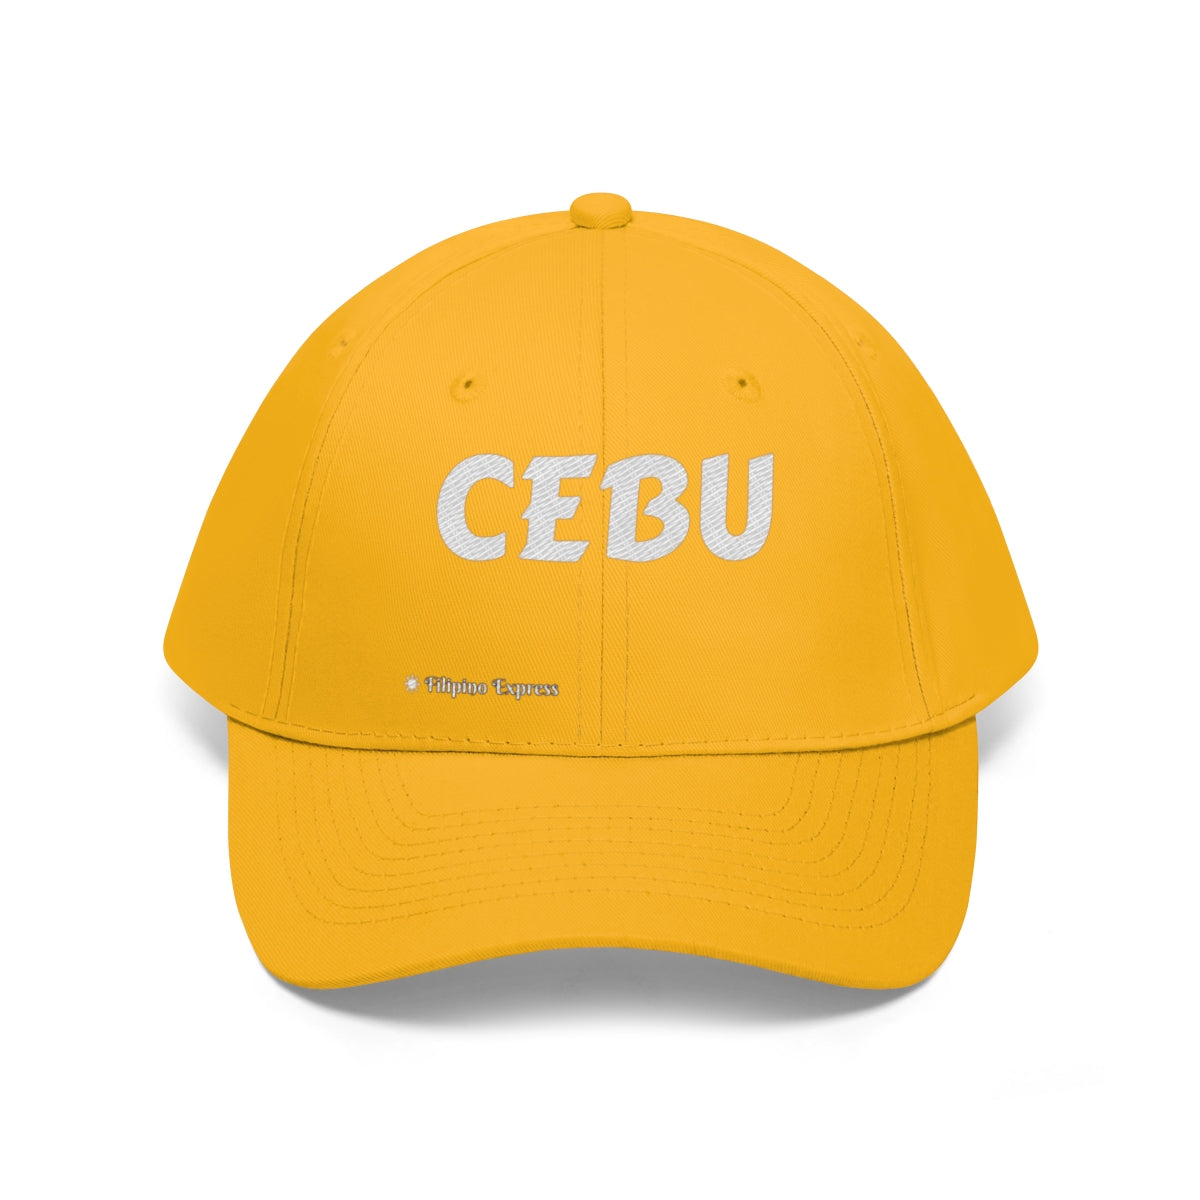 CEBU - 100% Cotton Embroidered Hat Available in Several Colors